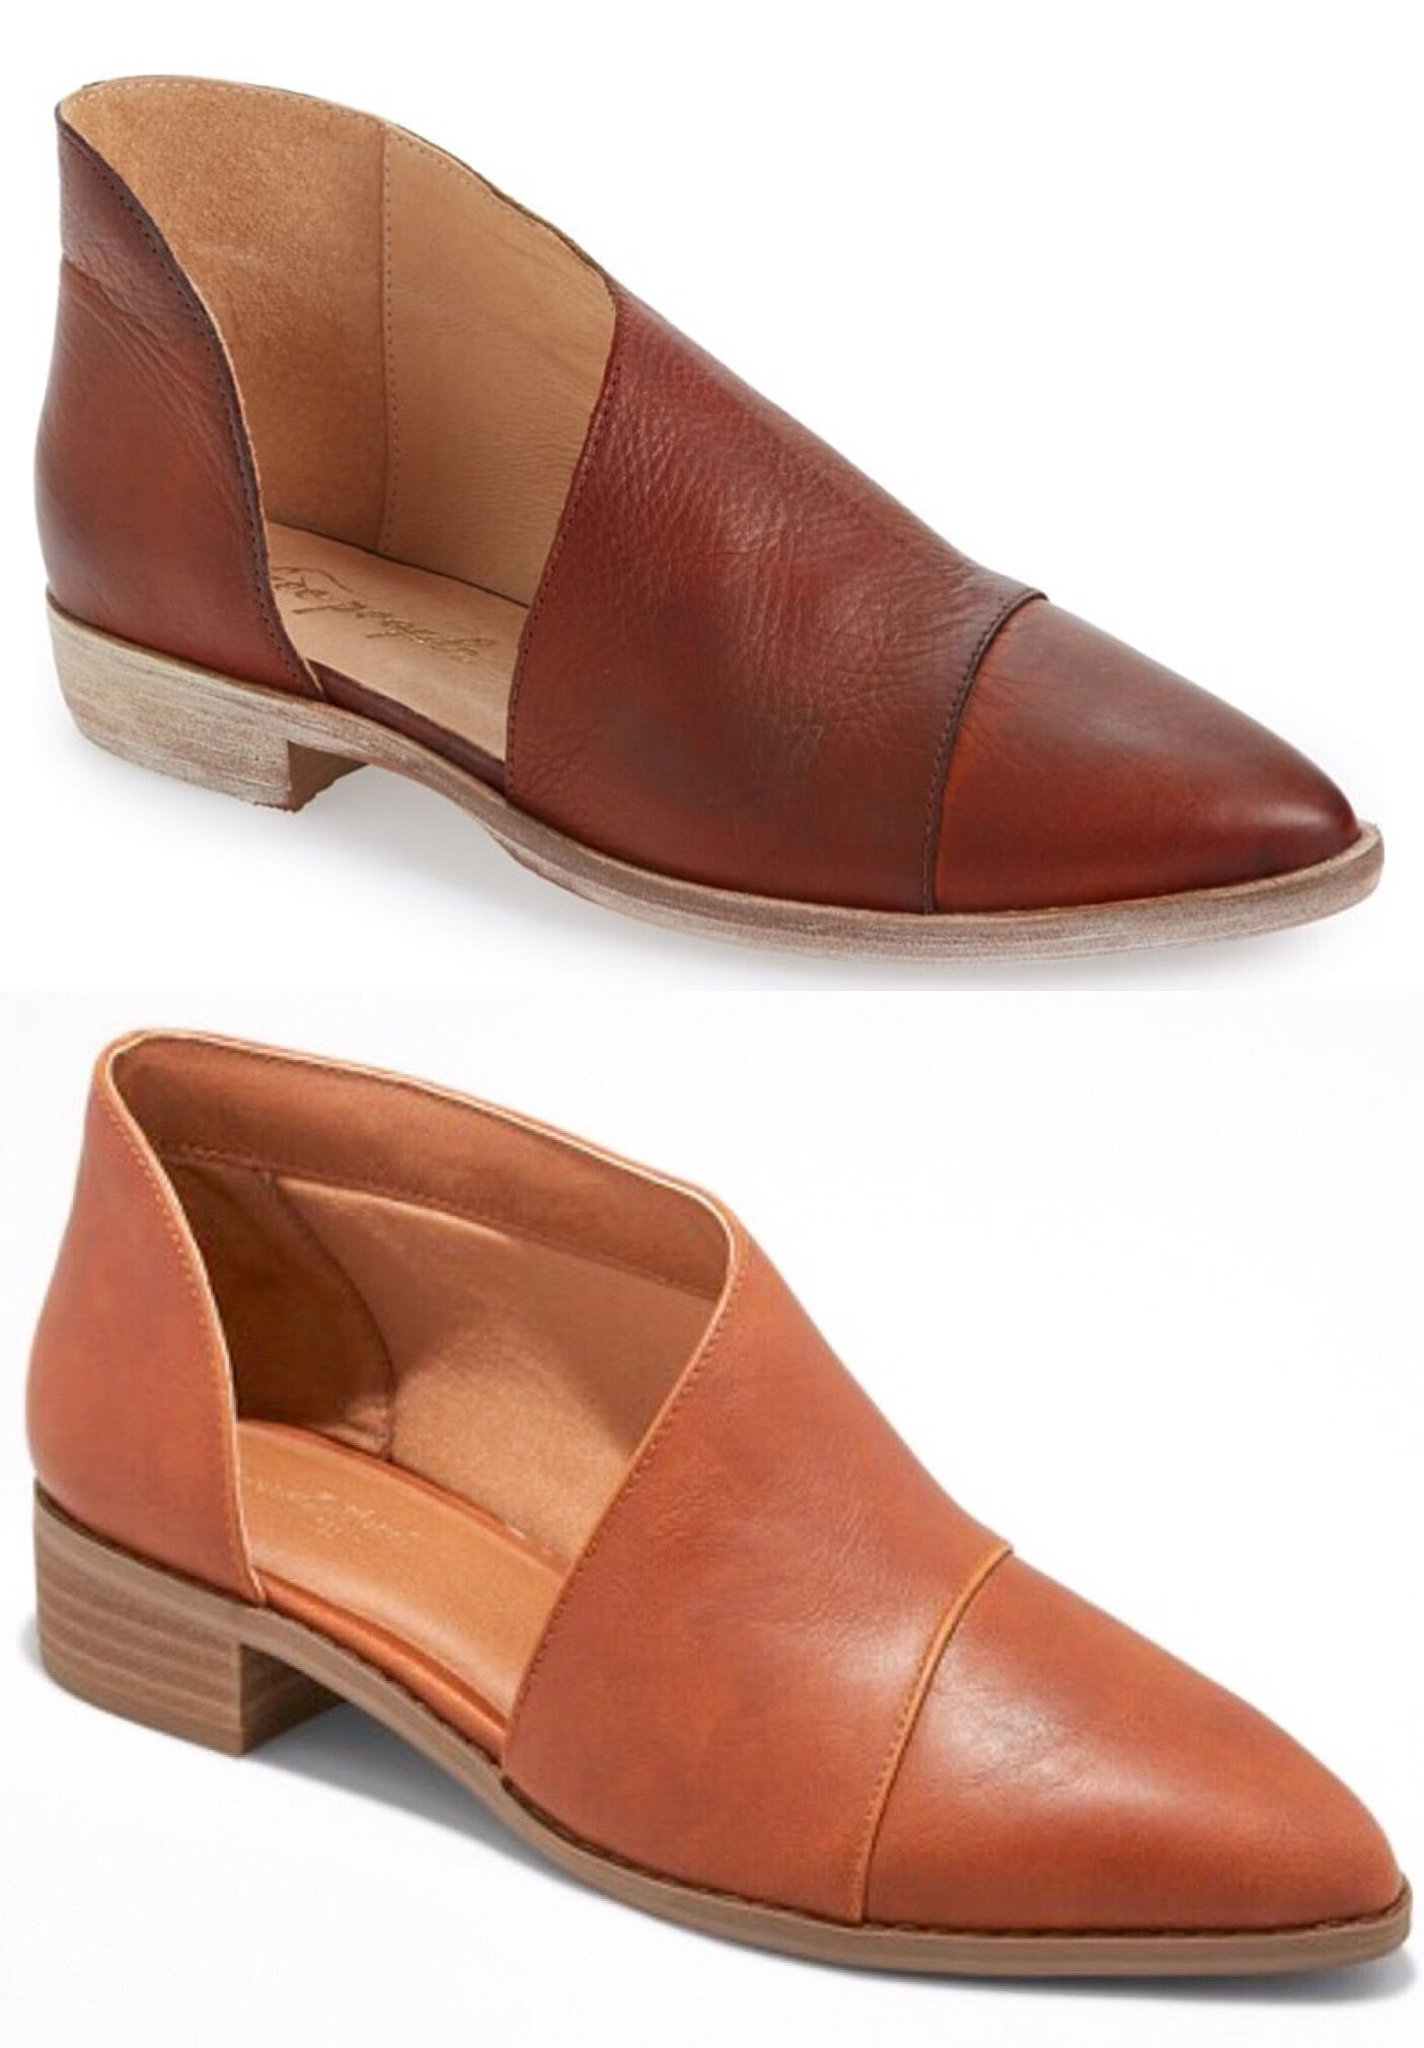 Splurge or Save? Fall Shoes Designer Looks For Less